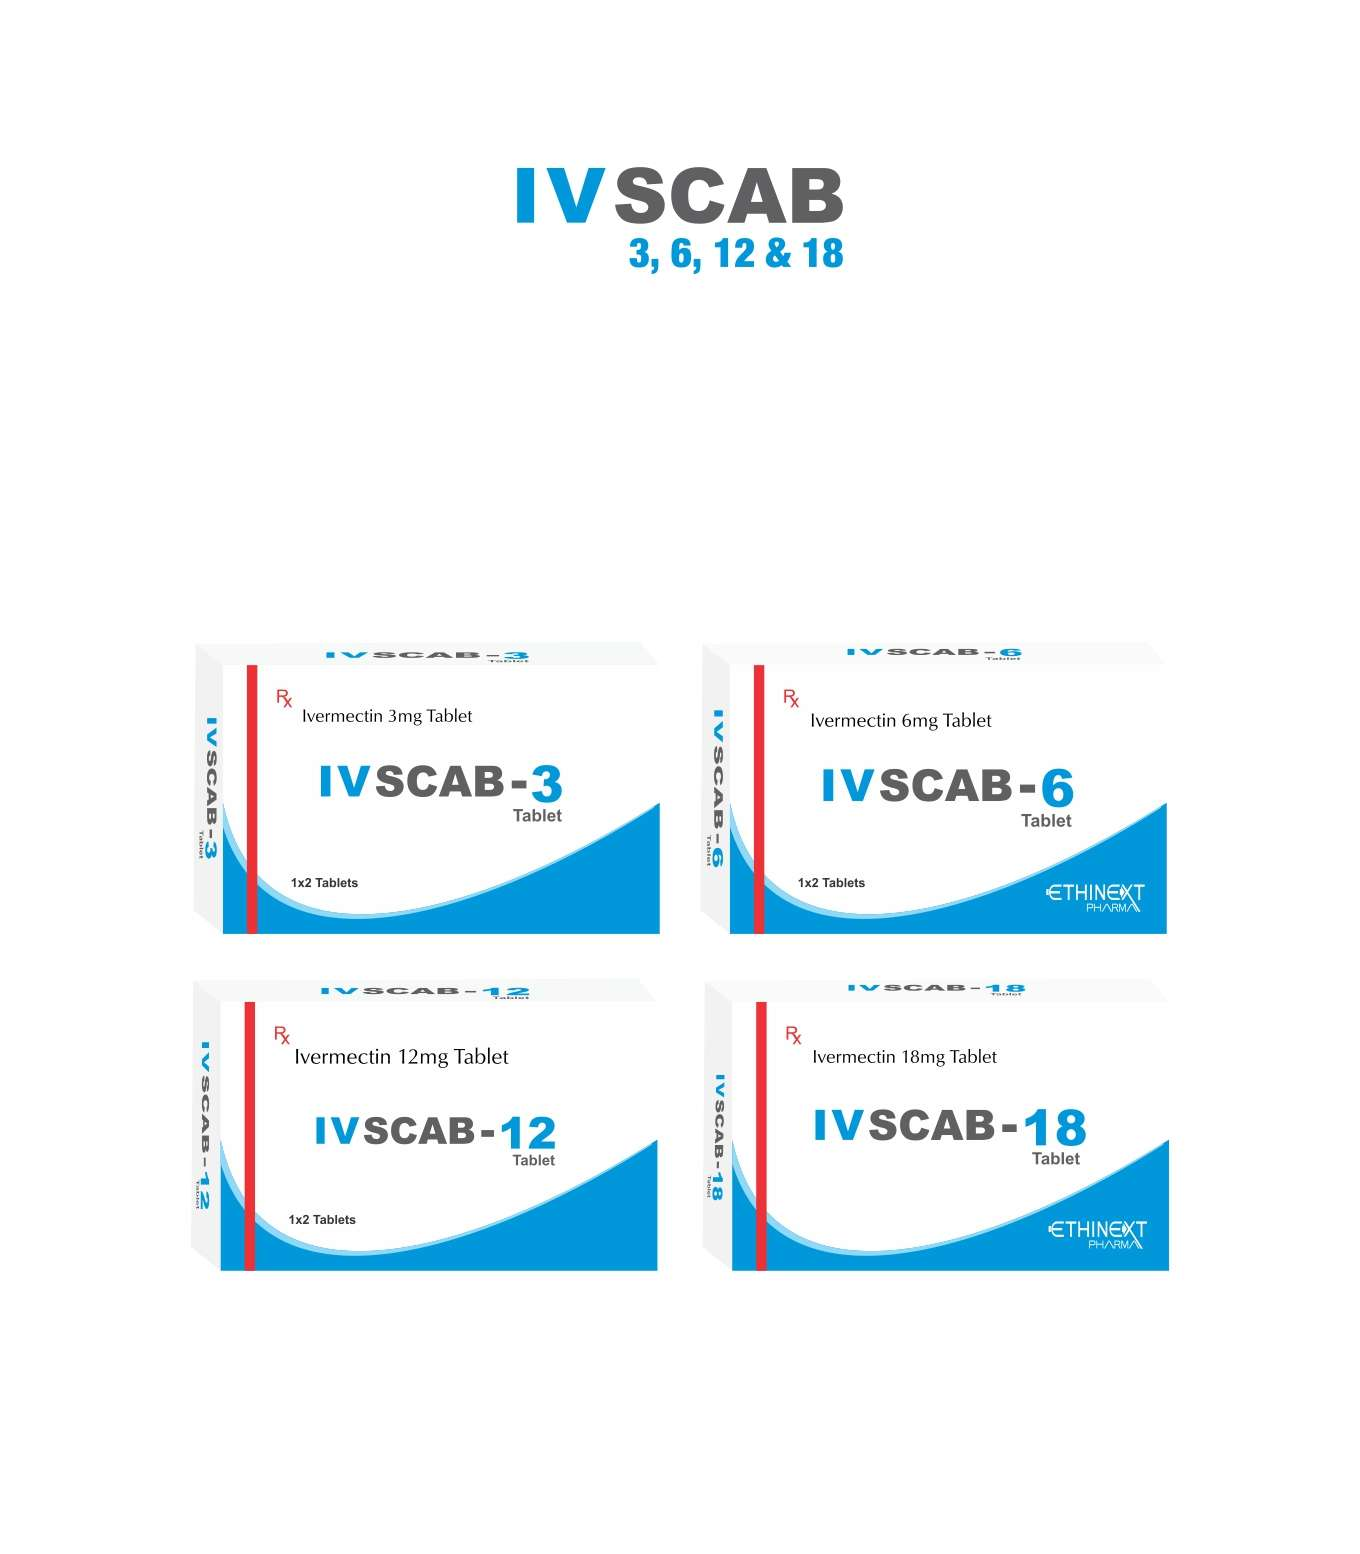 IV SCAB- Ivermectine Tablet